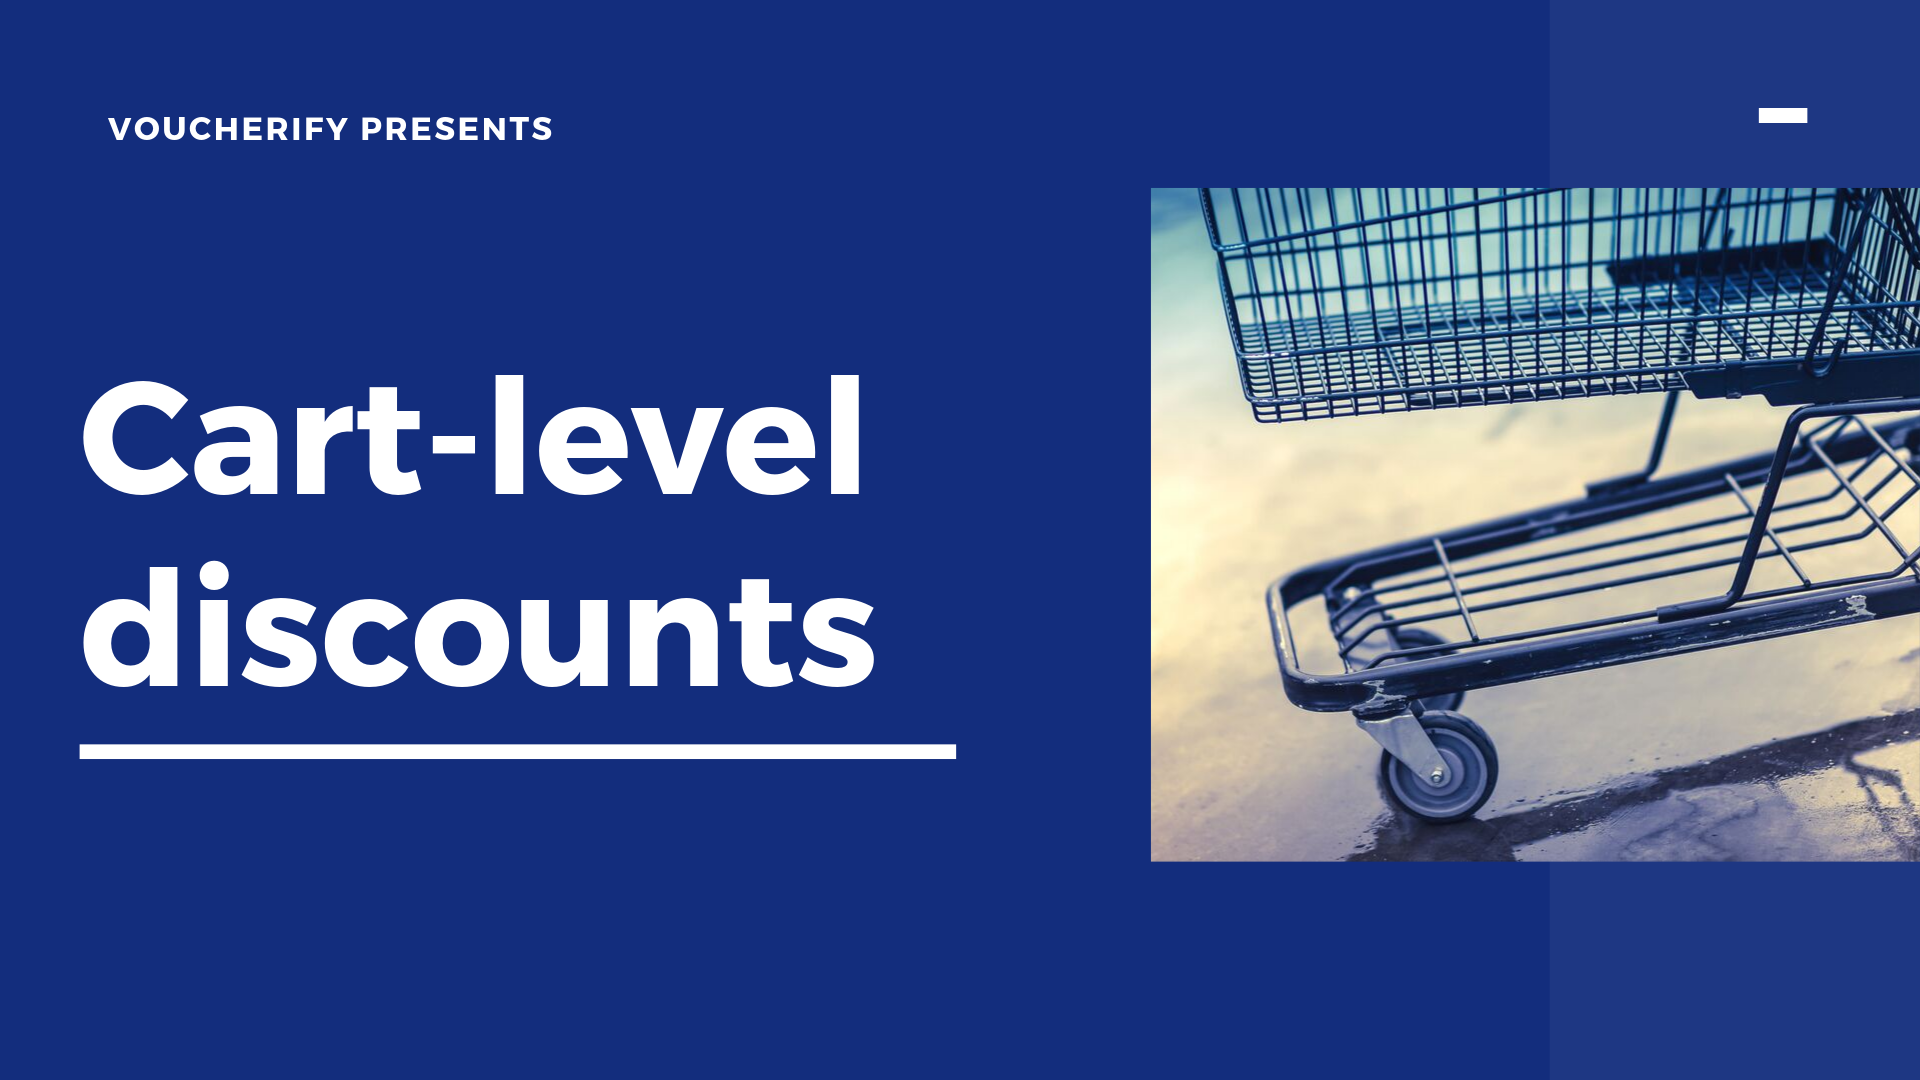 How to create cart discounts - the most effective upselling initiative for your marketing strategy